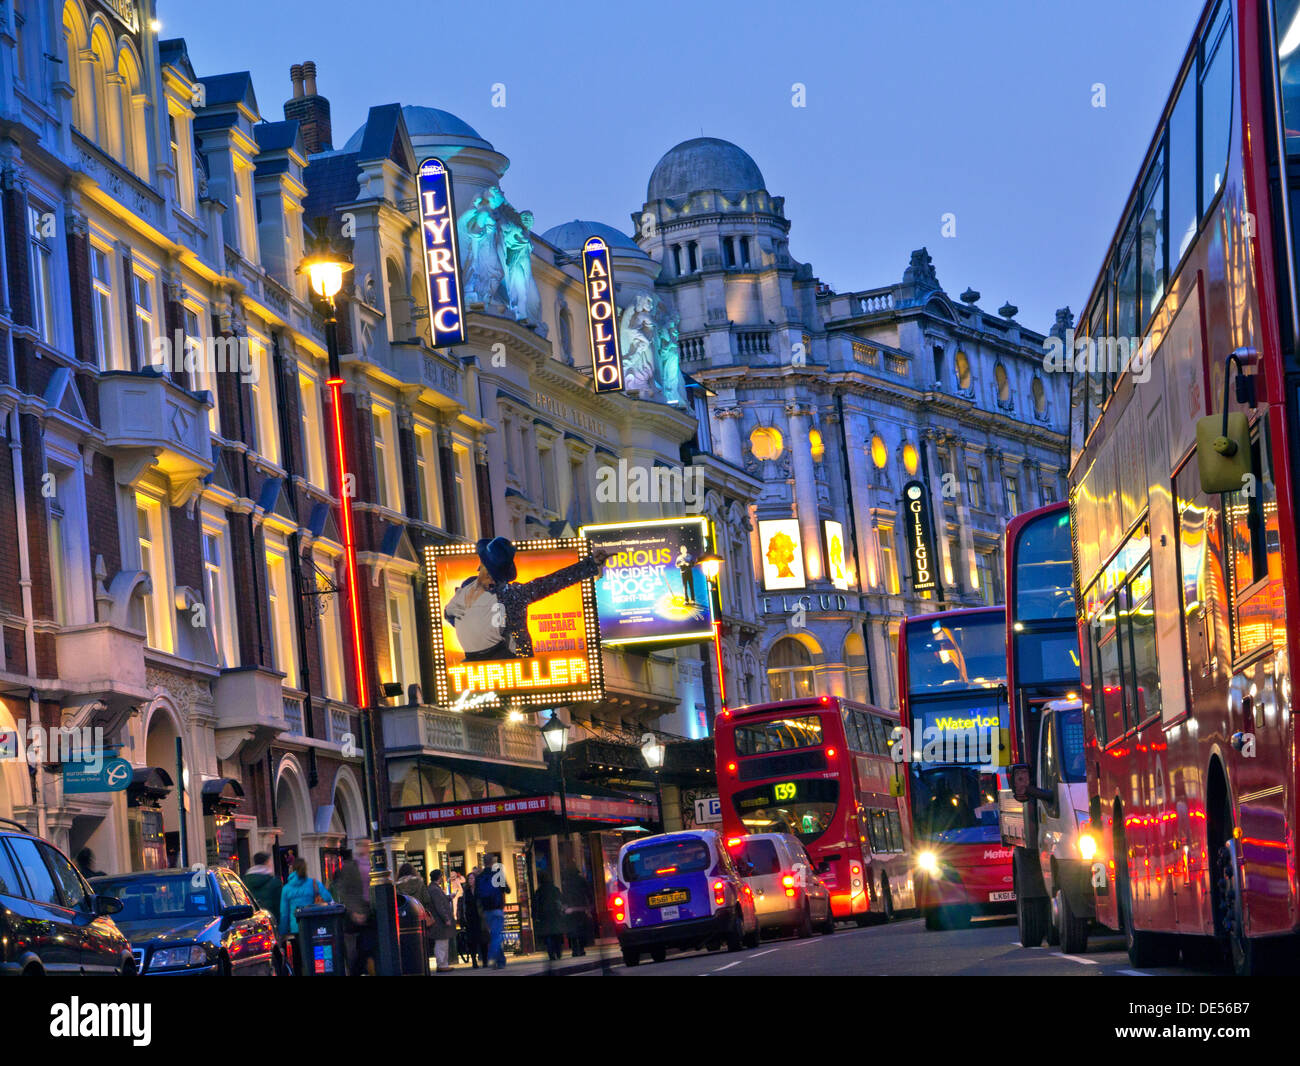 Theatreland busy with red buses and taxis in Shaftesbury Avenue West End London UK - Stock Image